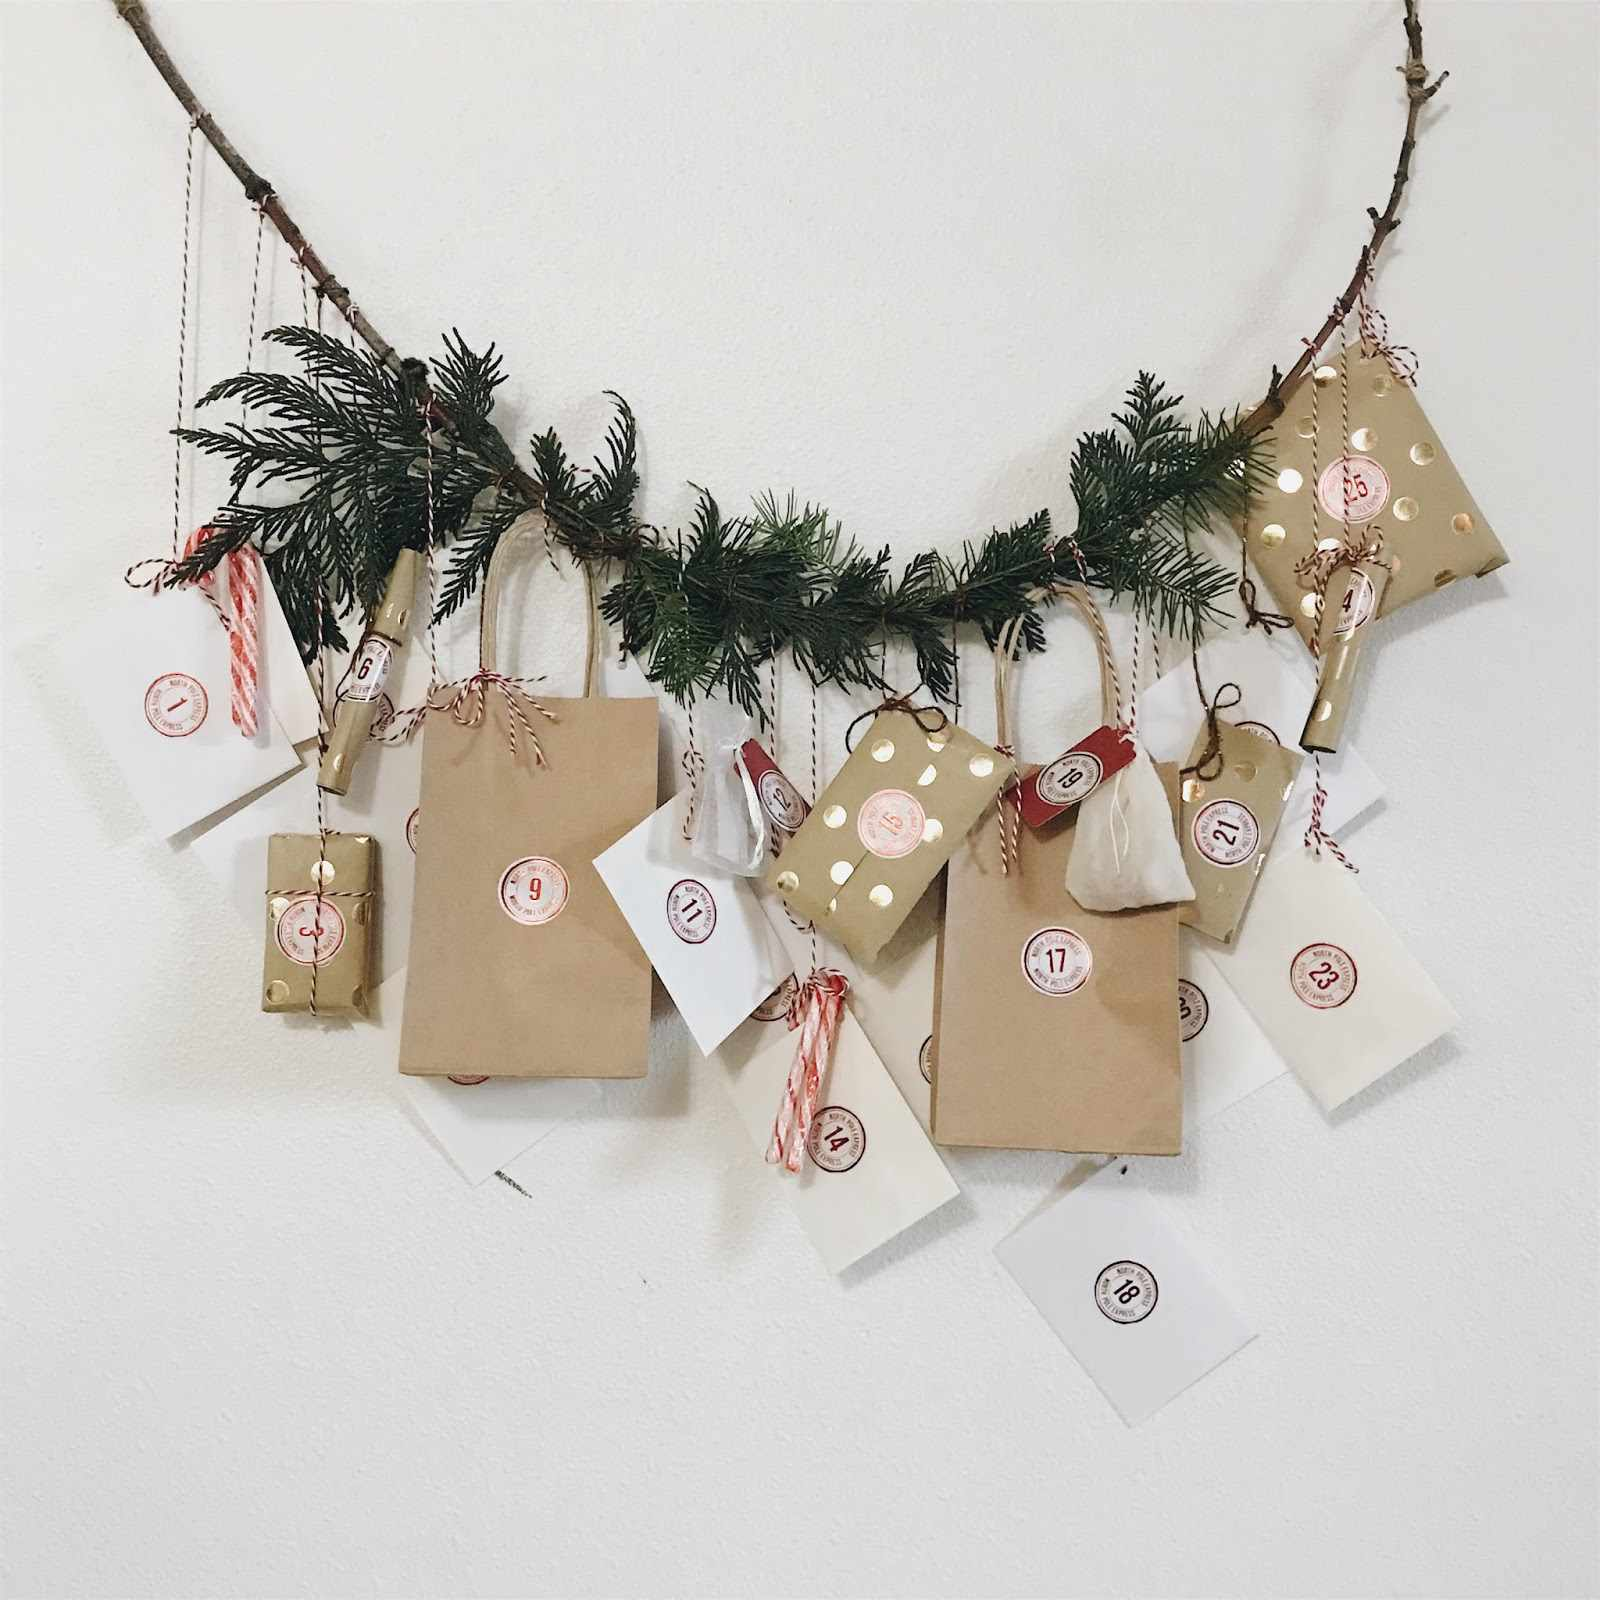 Hanging brown and white packages on a tree branch garland.